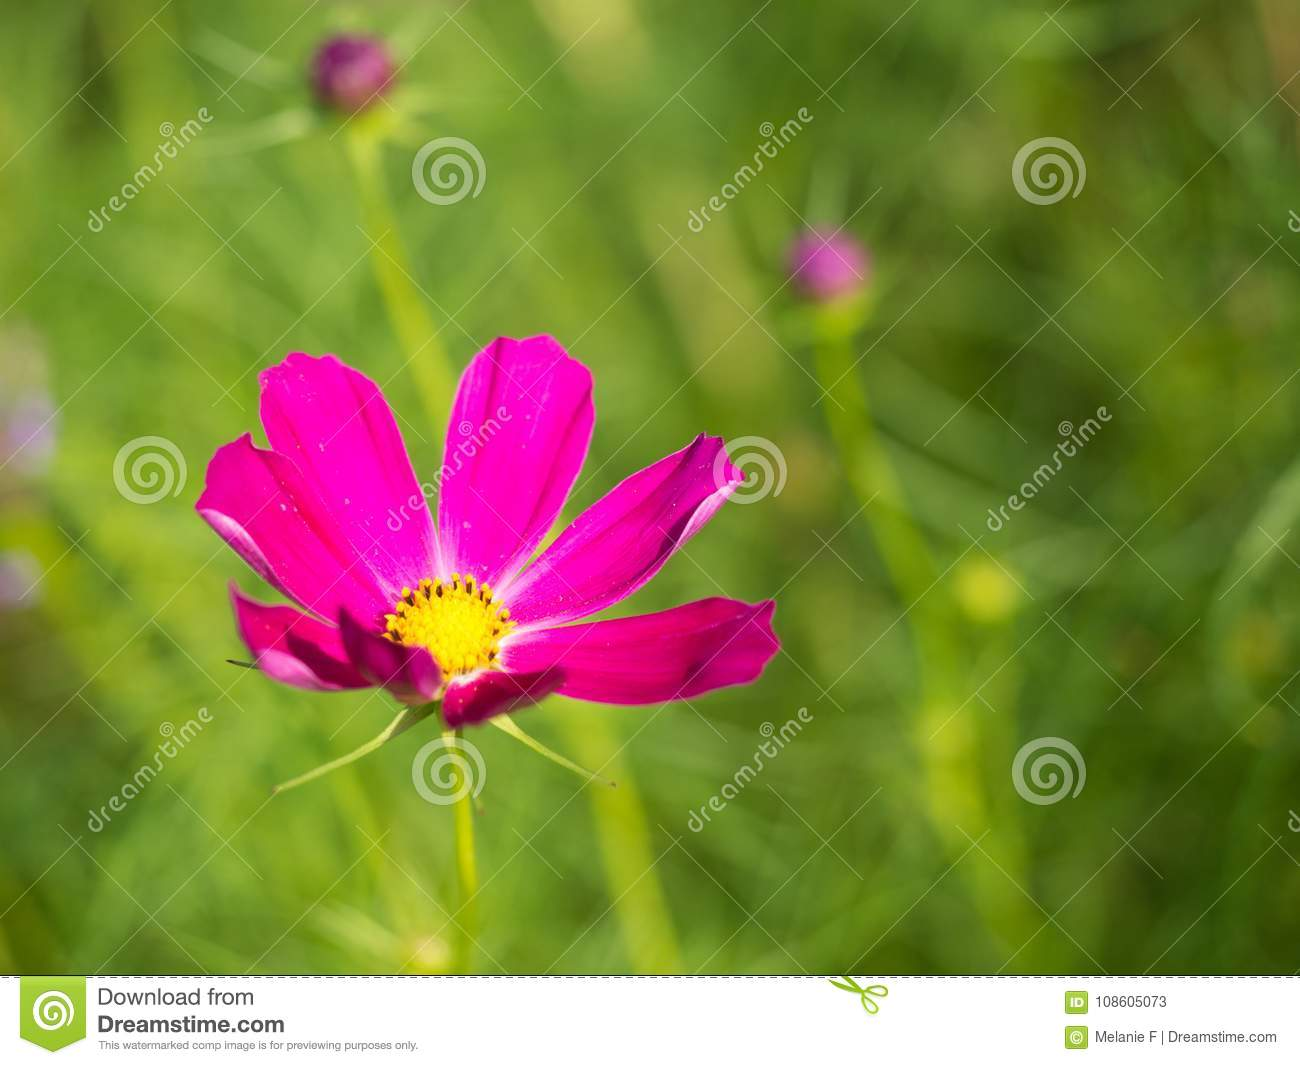 Bright pink cosmo flower stock image image of background 108605073 download bright pink cosmo flower stock image image of background 108605073 mightylinksfo